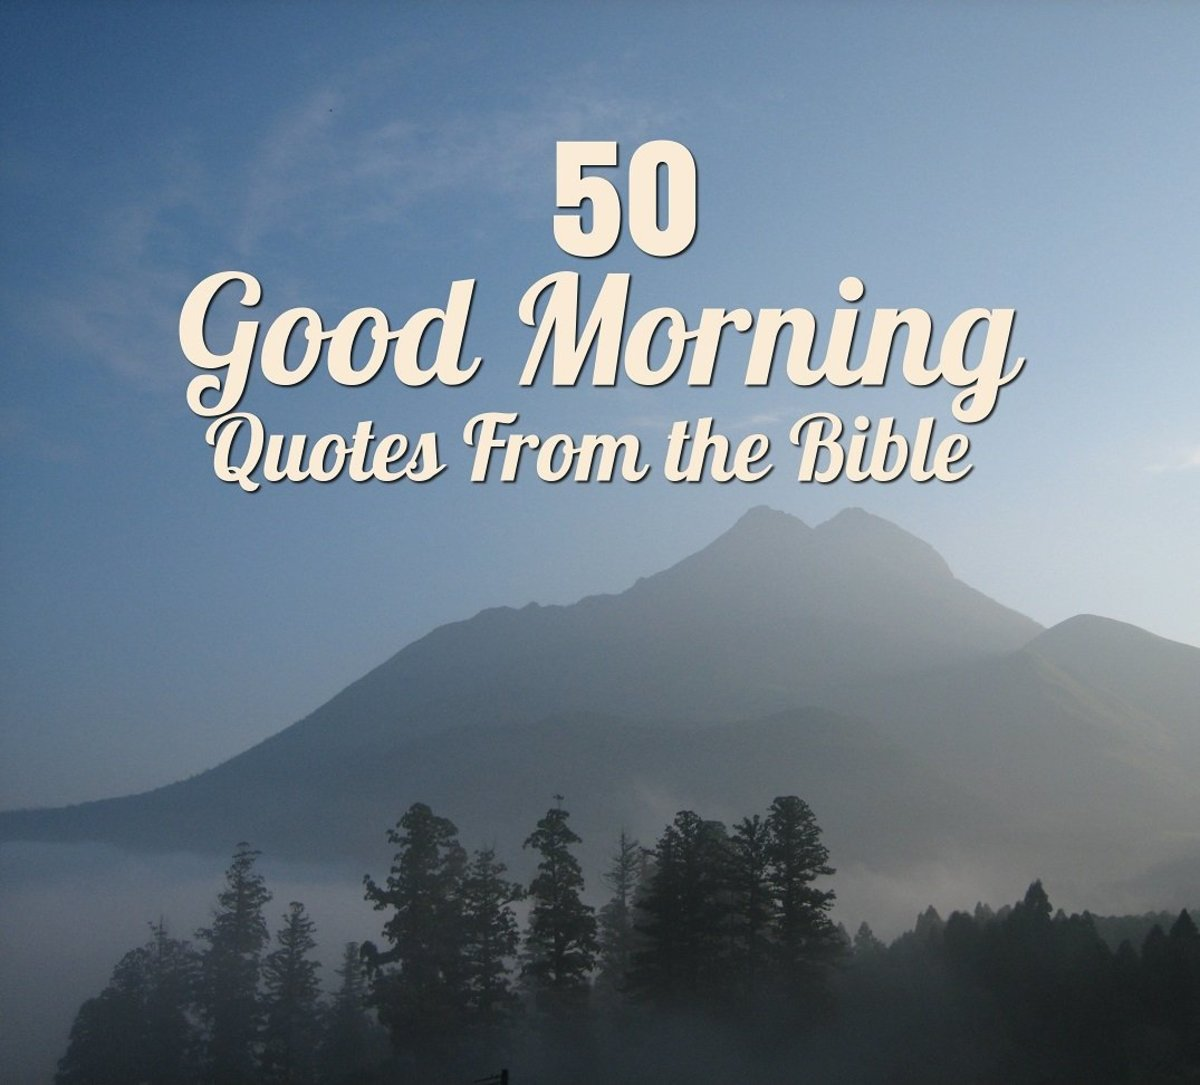 50 Good Morning Quotes from the Bible